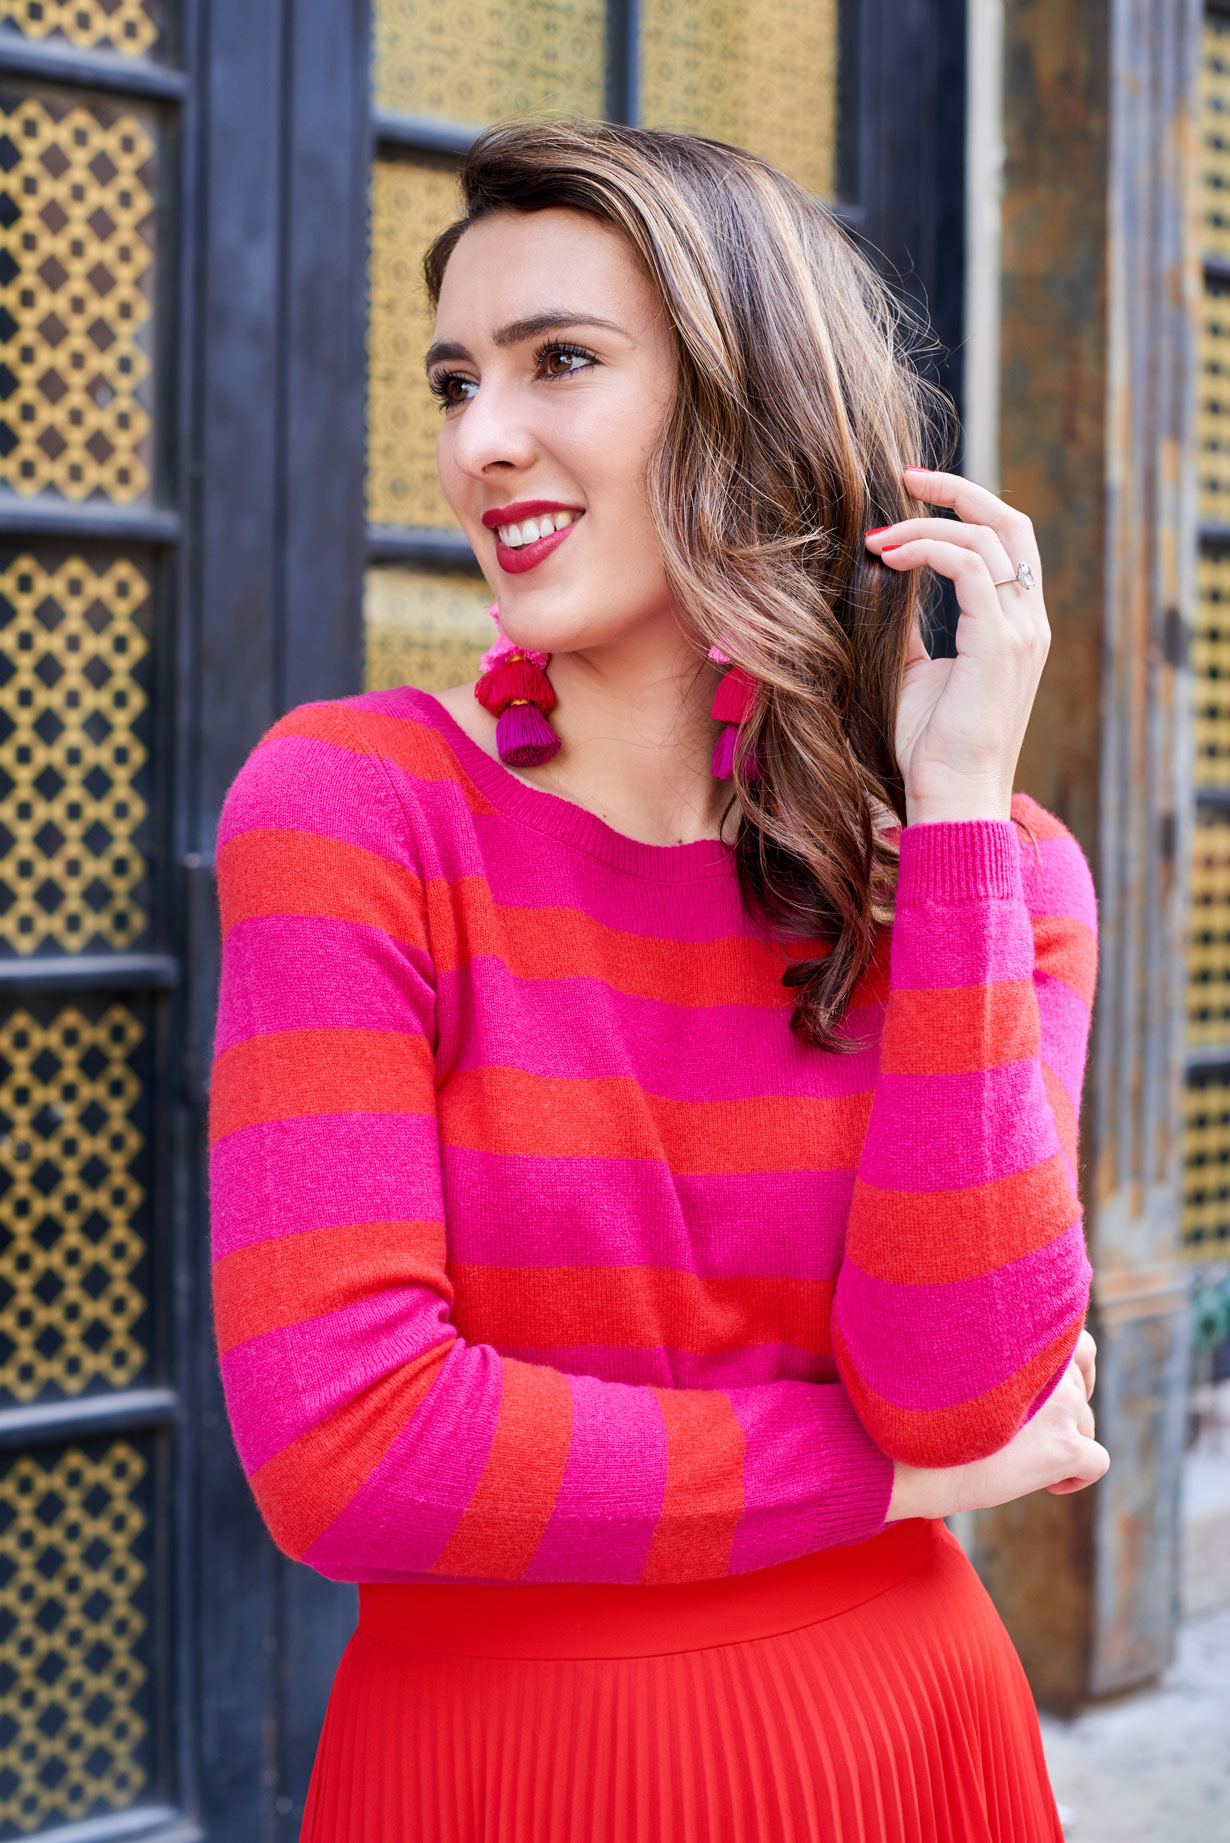 Samantha Metell of Bonjour Blue Personal Style Blog Personal Style Blog New York Wearing Pink and Red Outfit